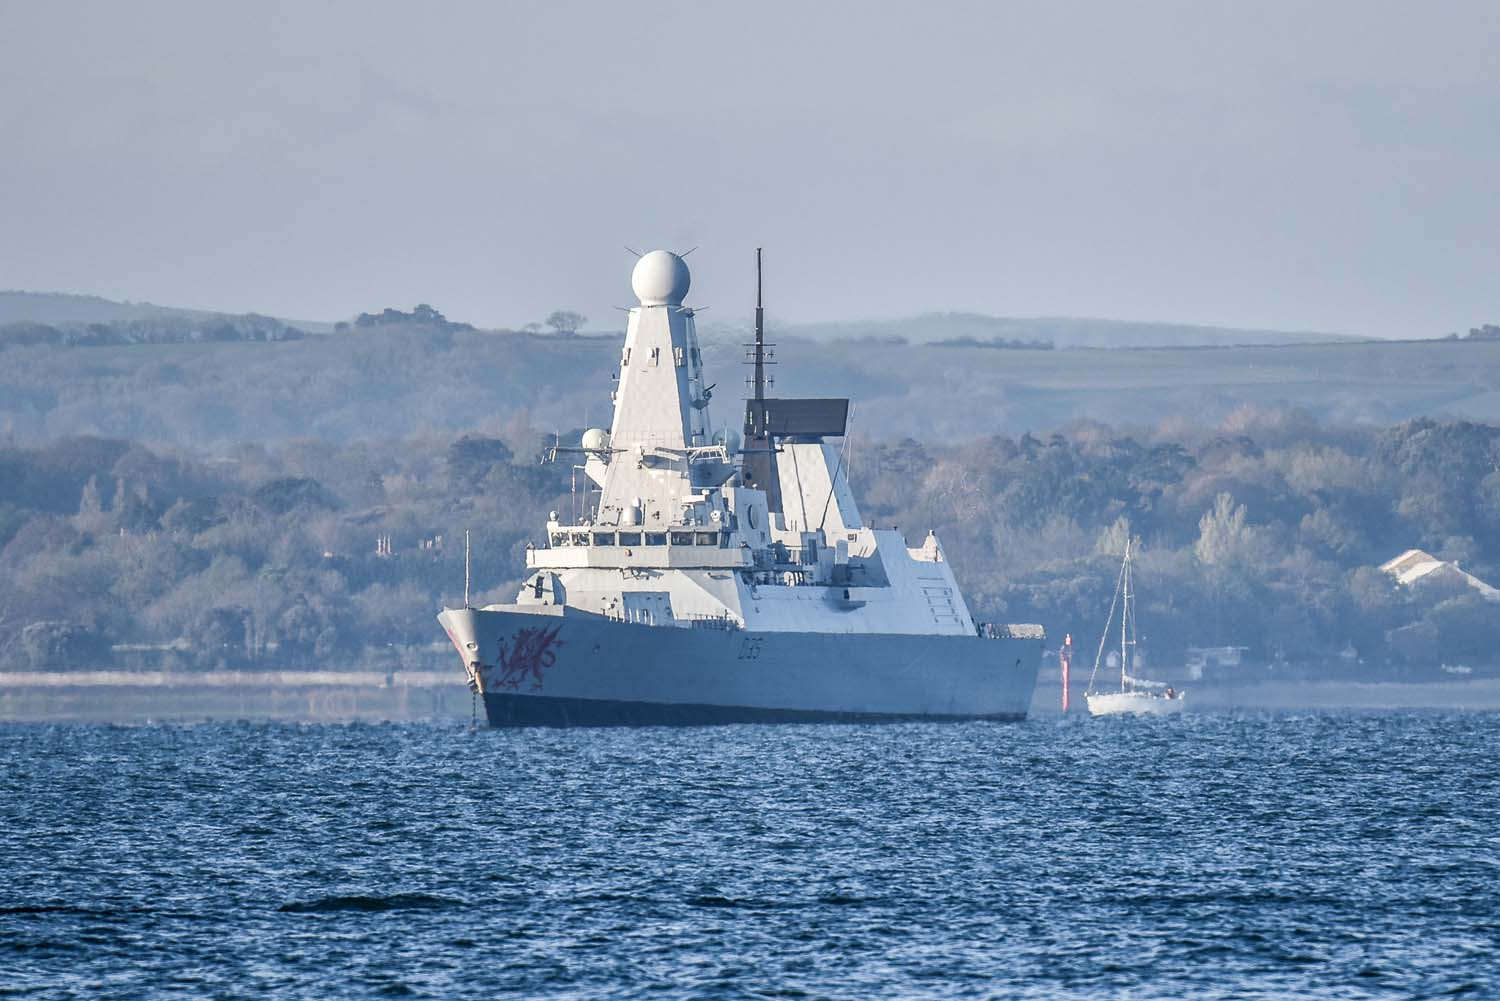 HMS Dragon in the Solent